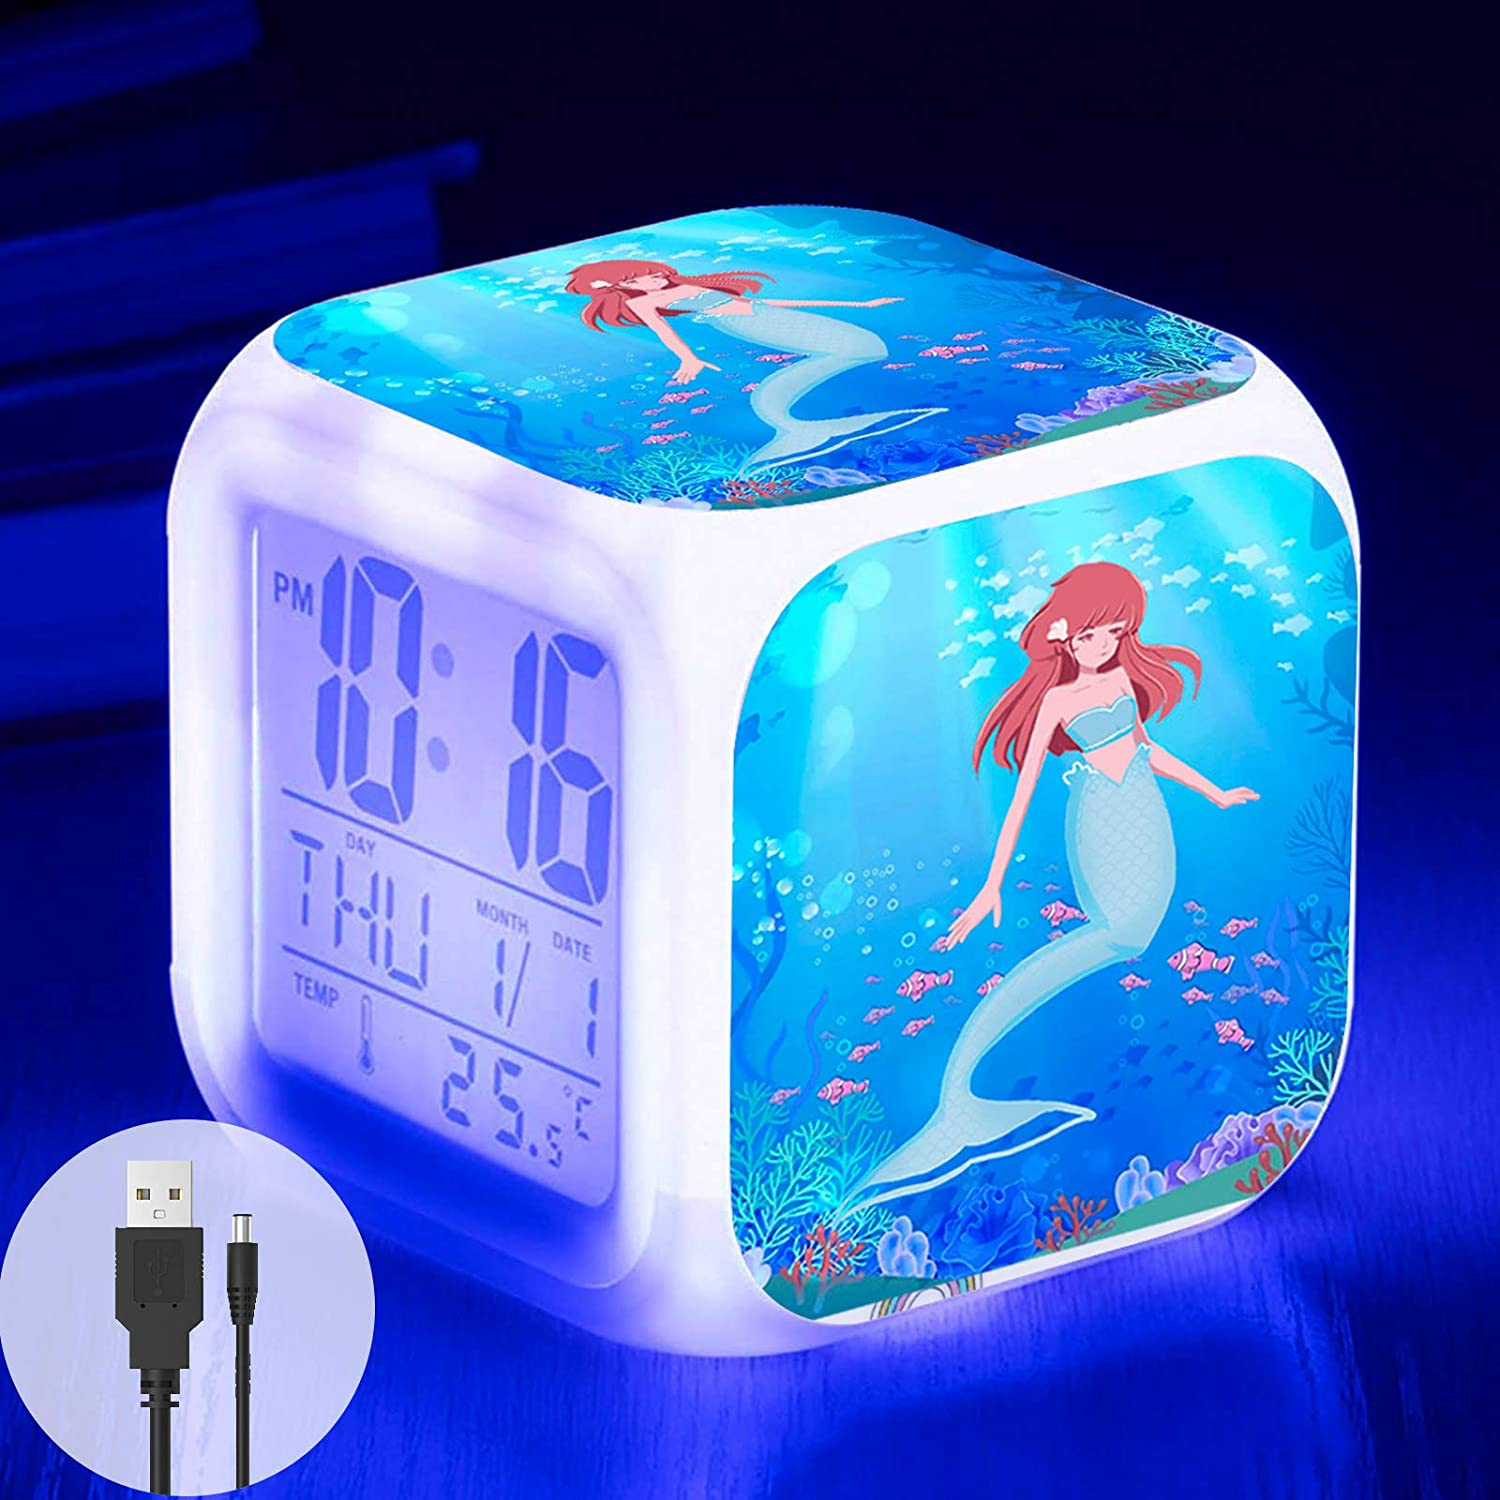 Mermaid Alarm Clock for Girls, Kids Digital Alarm Clock with 7 Color LED Light and USB Cable, Wake Up Clock with Mermaid Girl Bedroom Decor for Christmas, School Begins and Birthday Gifts (Blue)